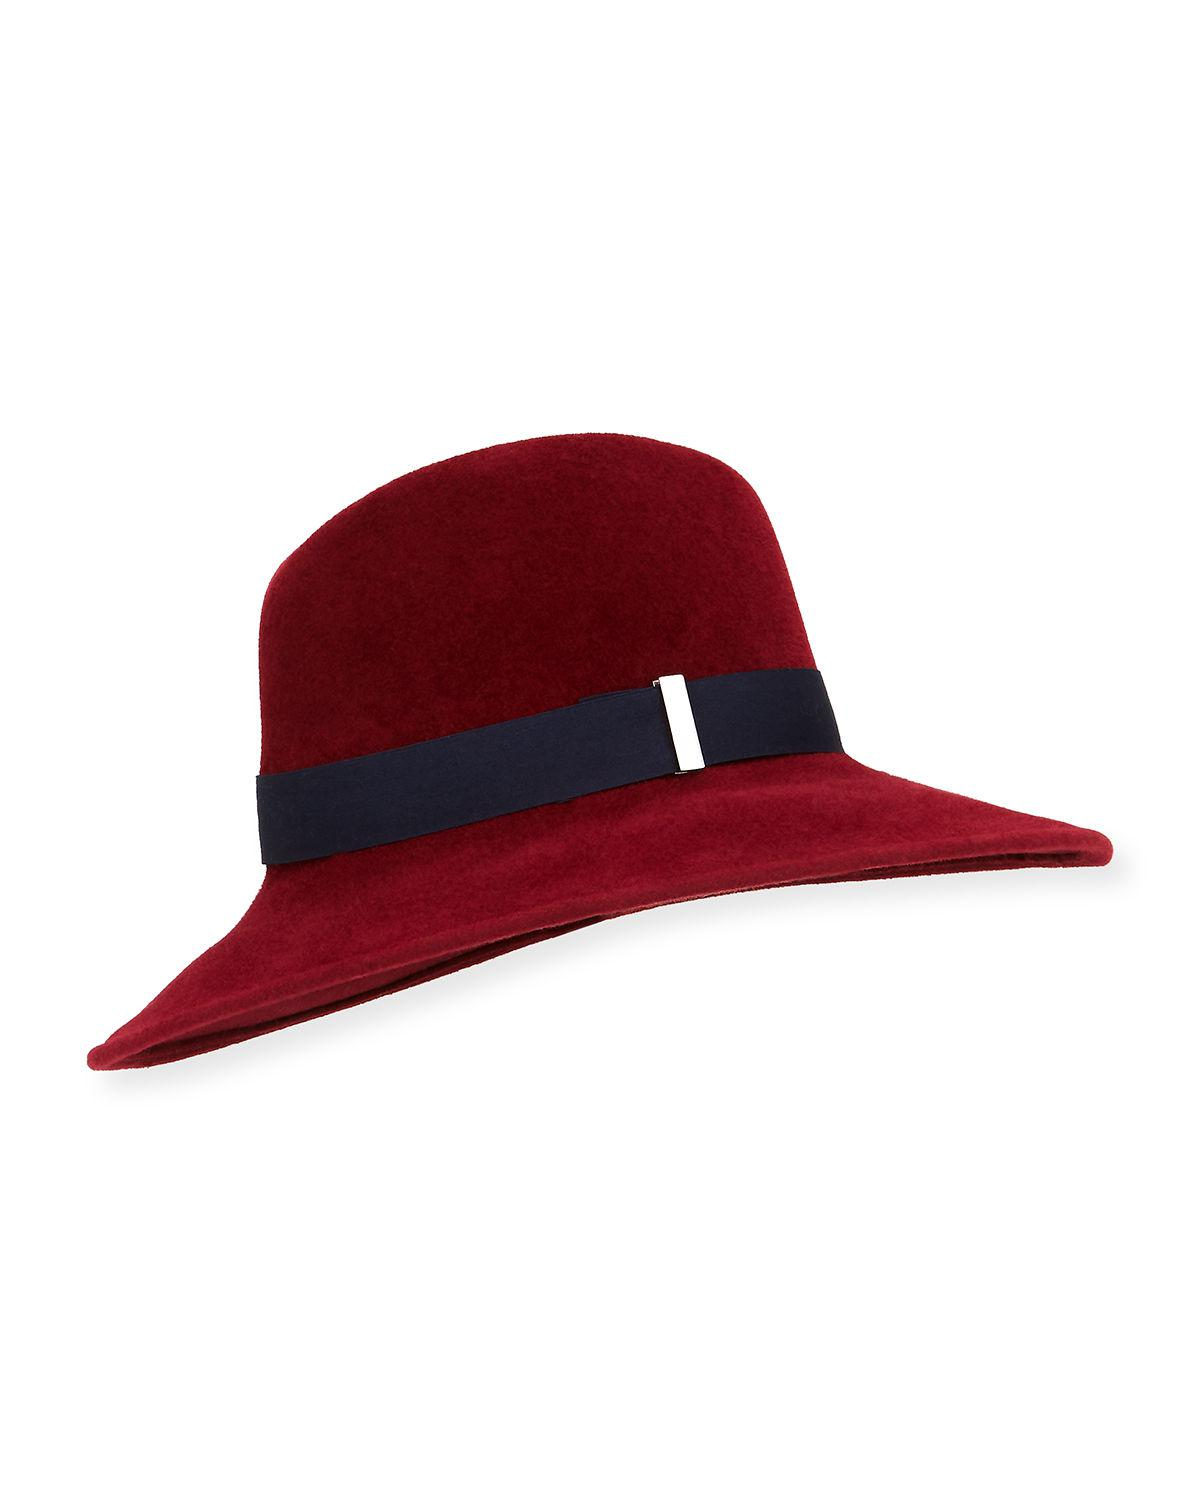 8614a03f60d7b Gigi Burris Millinery - Red Requiem Hand-blocked Wide-brim Fedora - Lyst